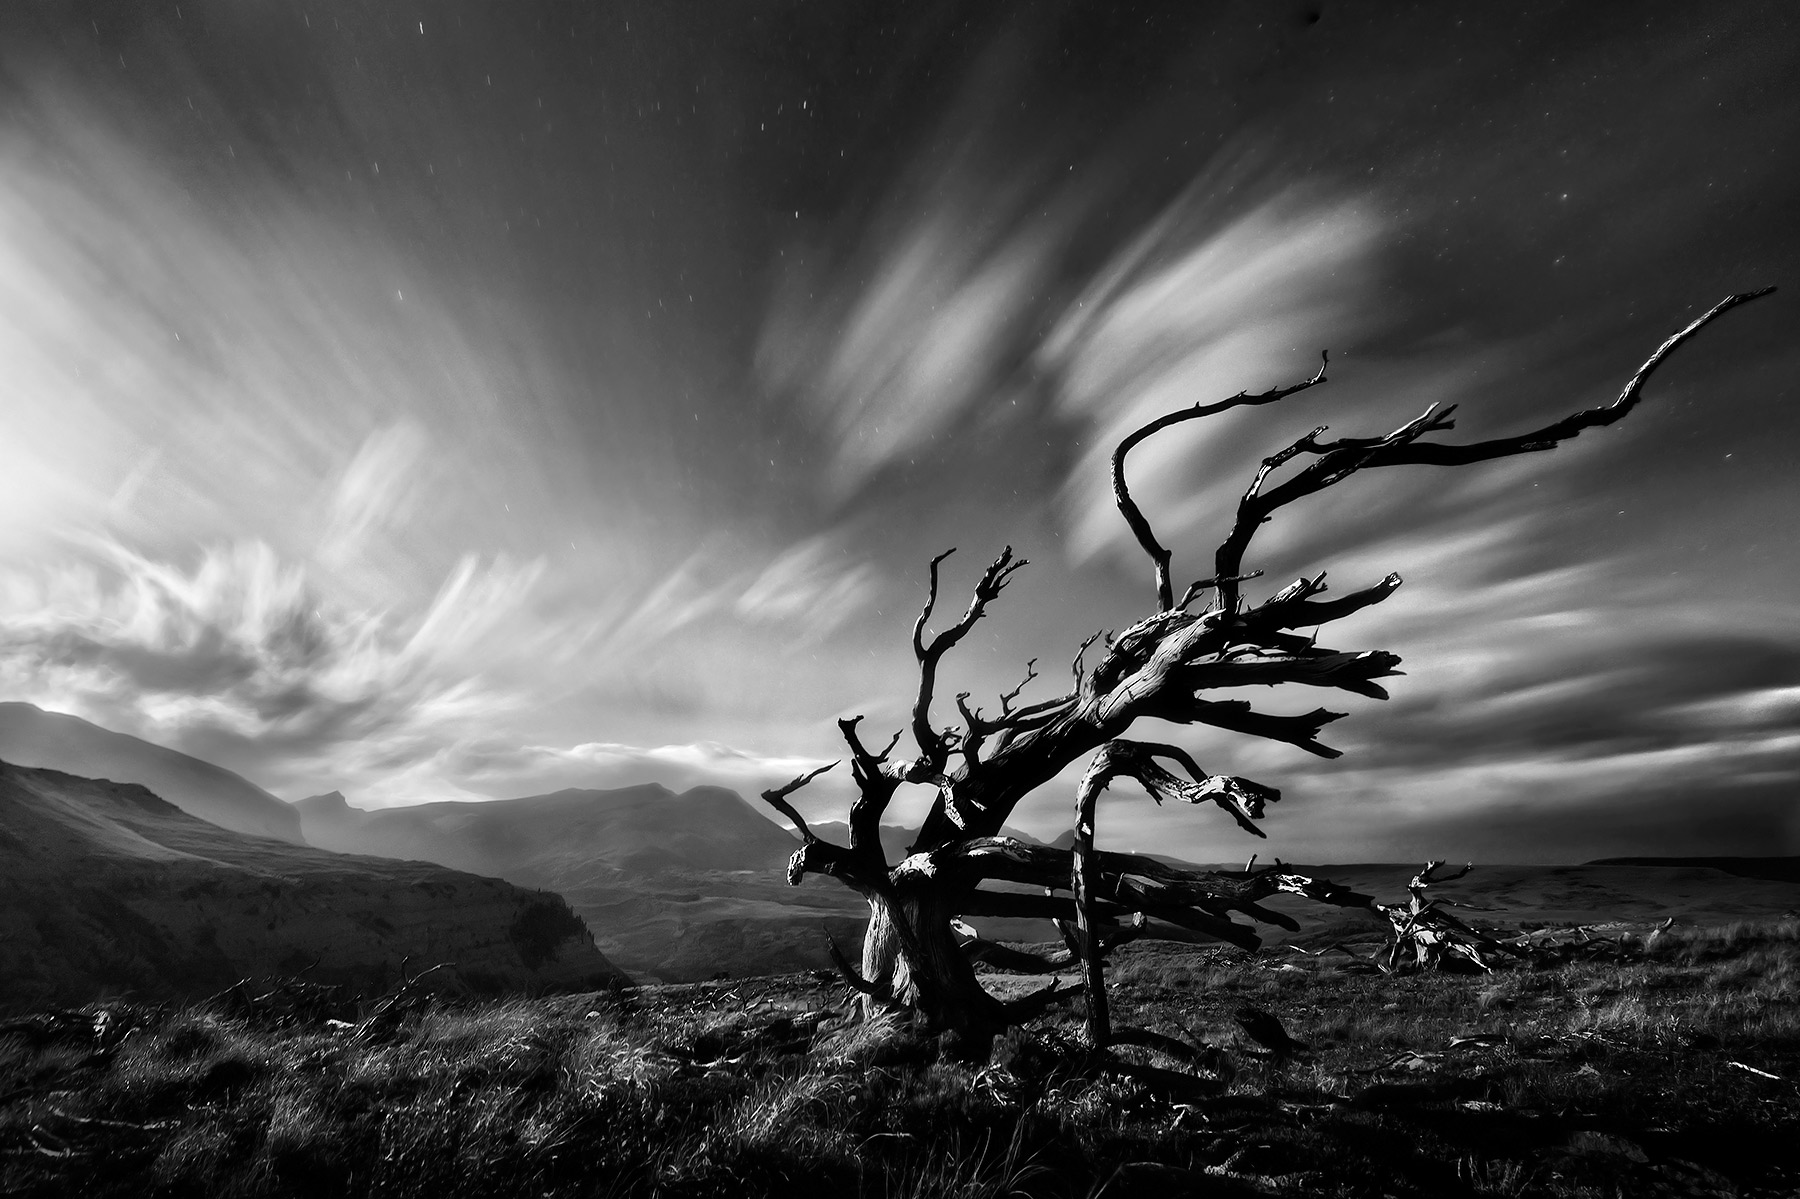 A black and white rendition of an ancient tree under moonlight using a long exposure to streak the skies across Blackfoot Land...